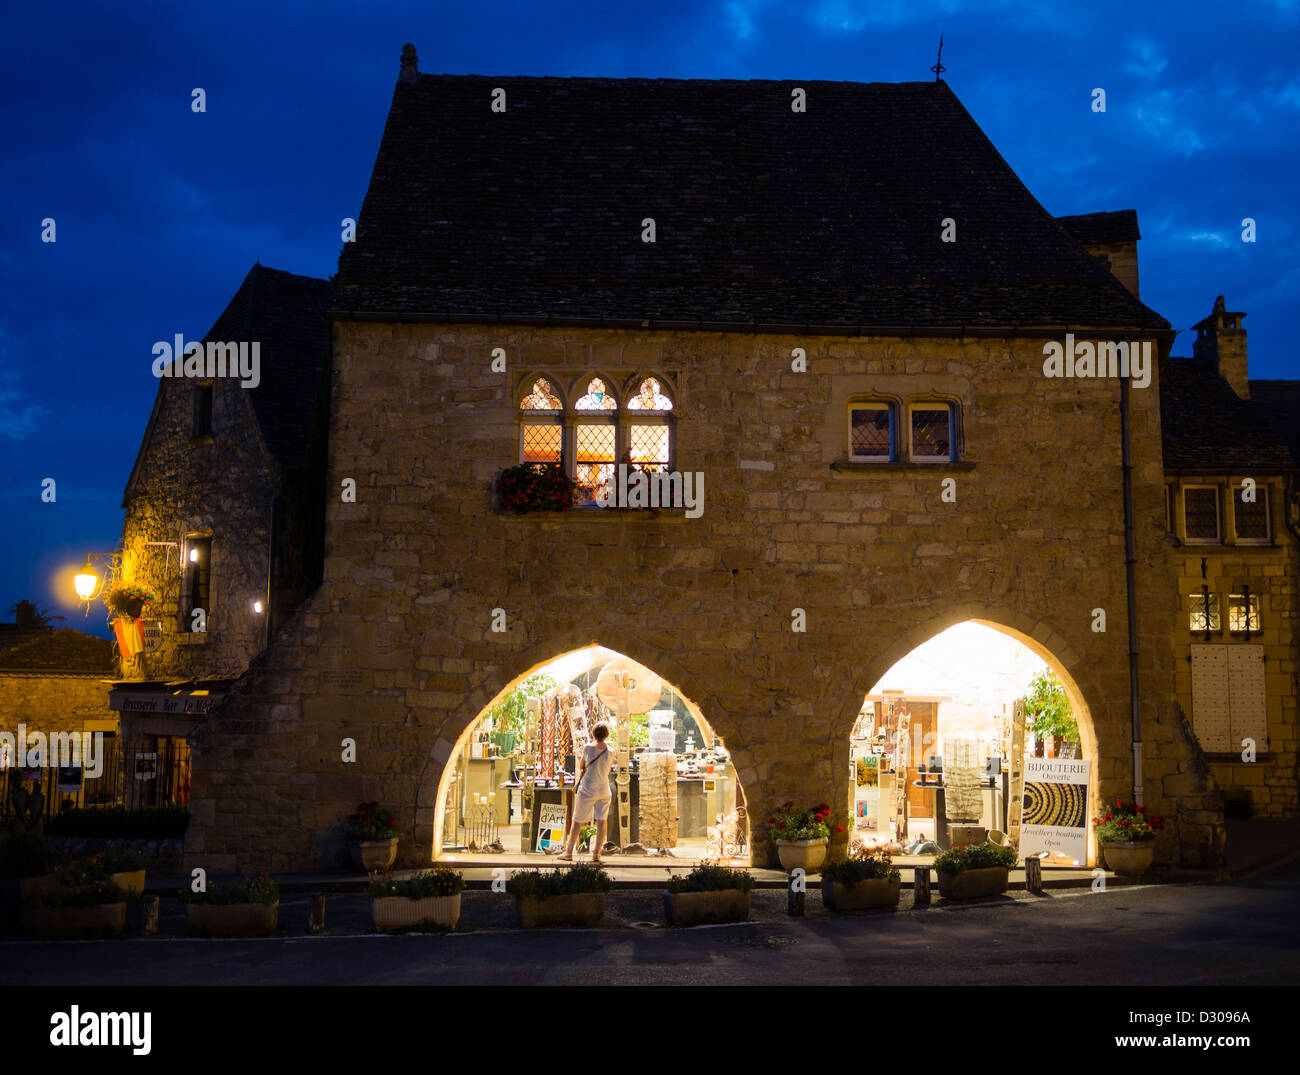 A medieval french house at Domme, Département Dordogne, Périgord, Southern France - Stock Image